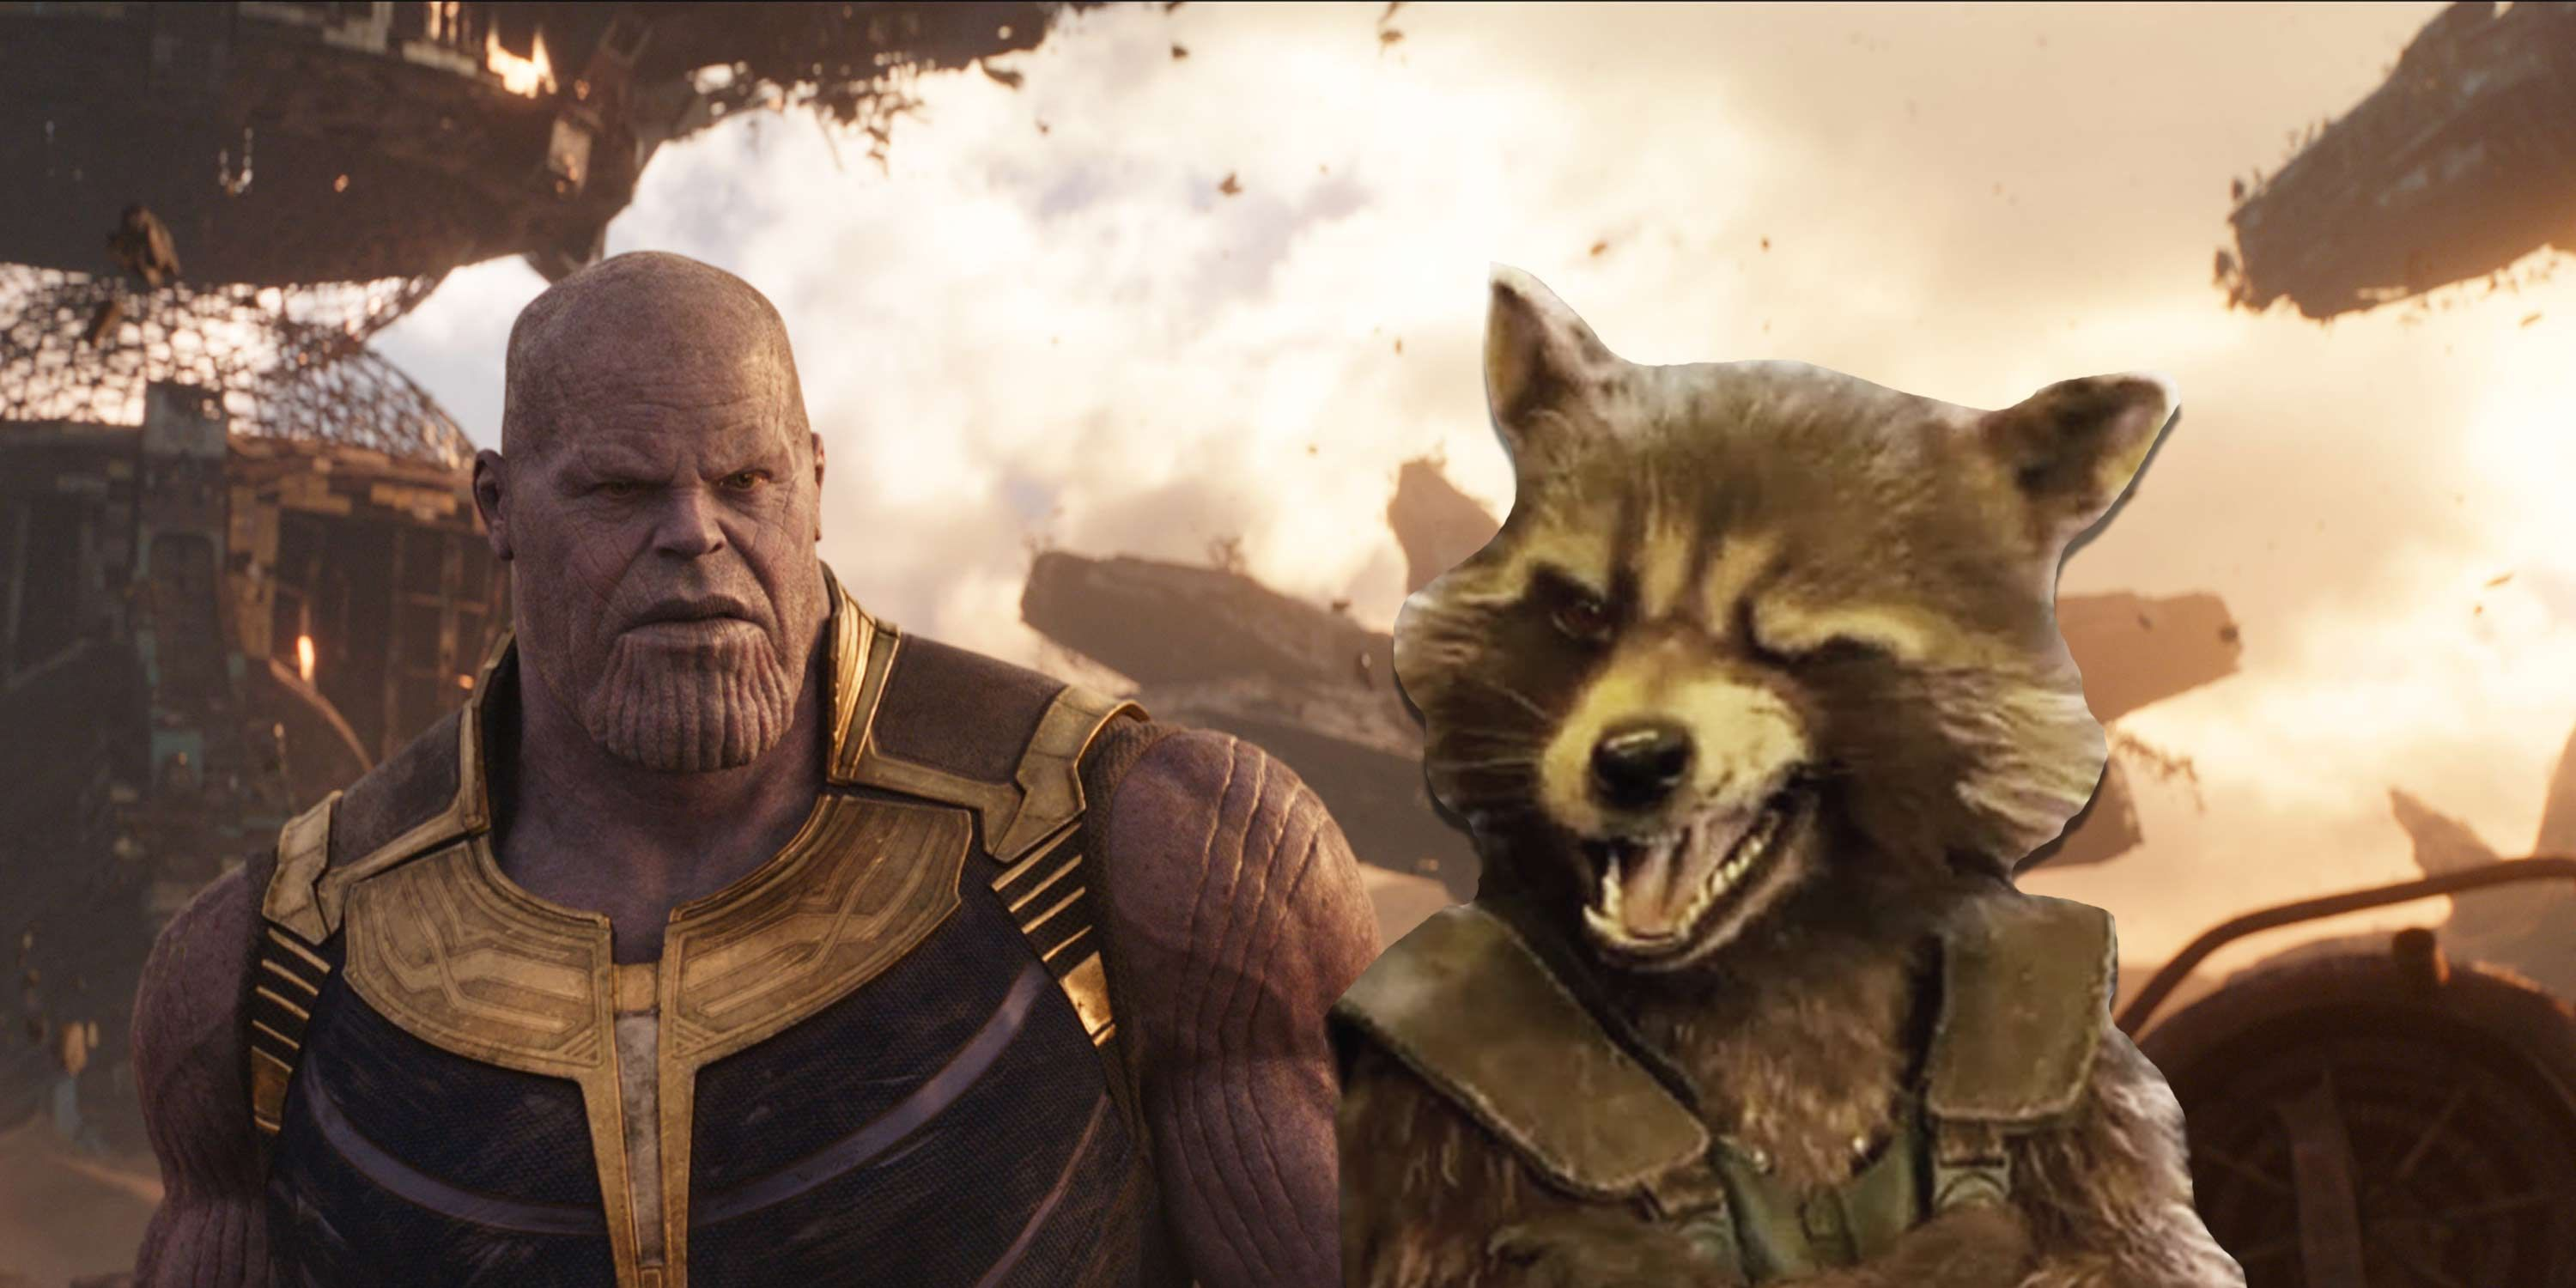 Thanos, Rocket Raccoon, Defends ending